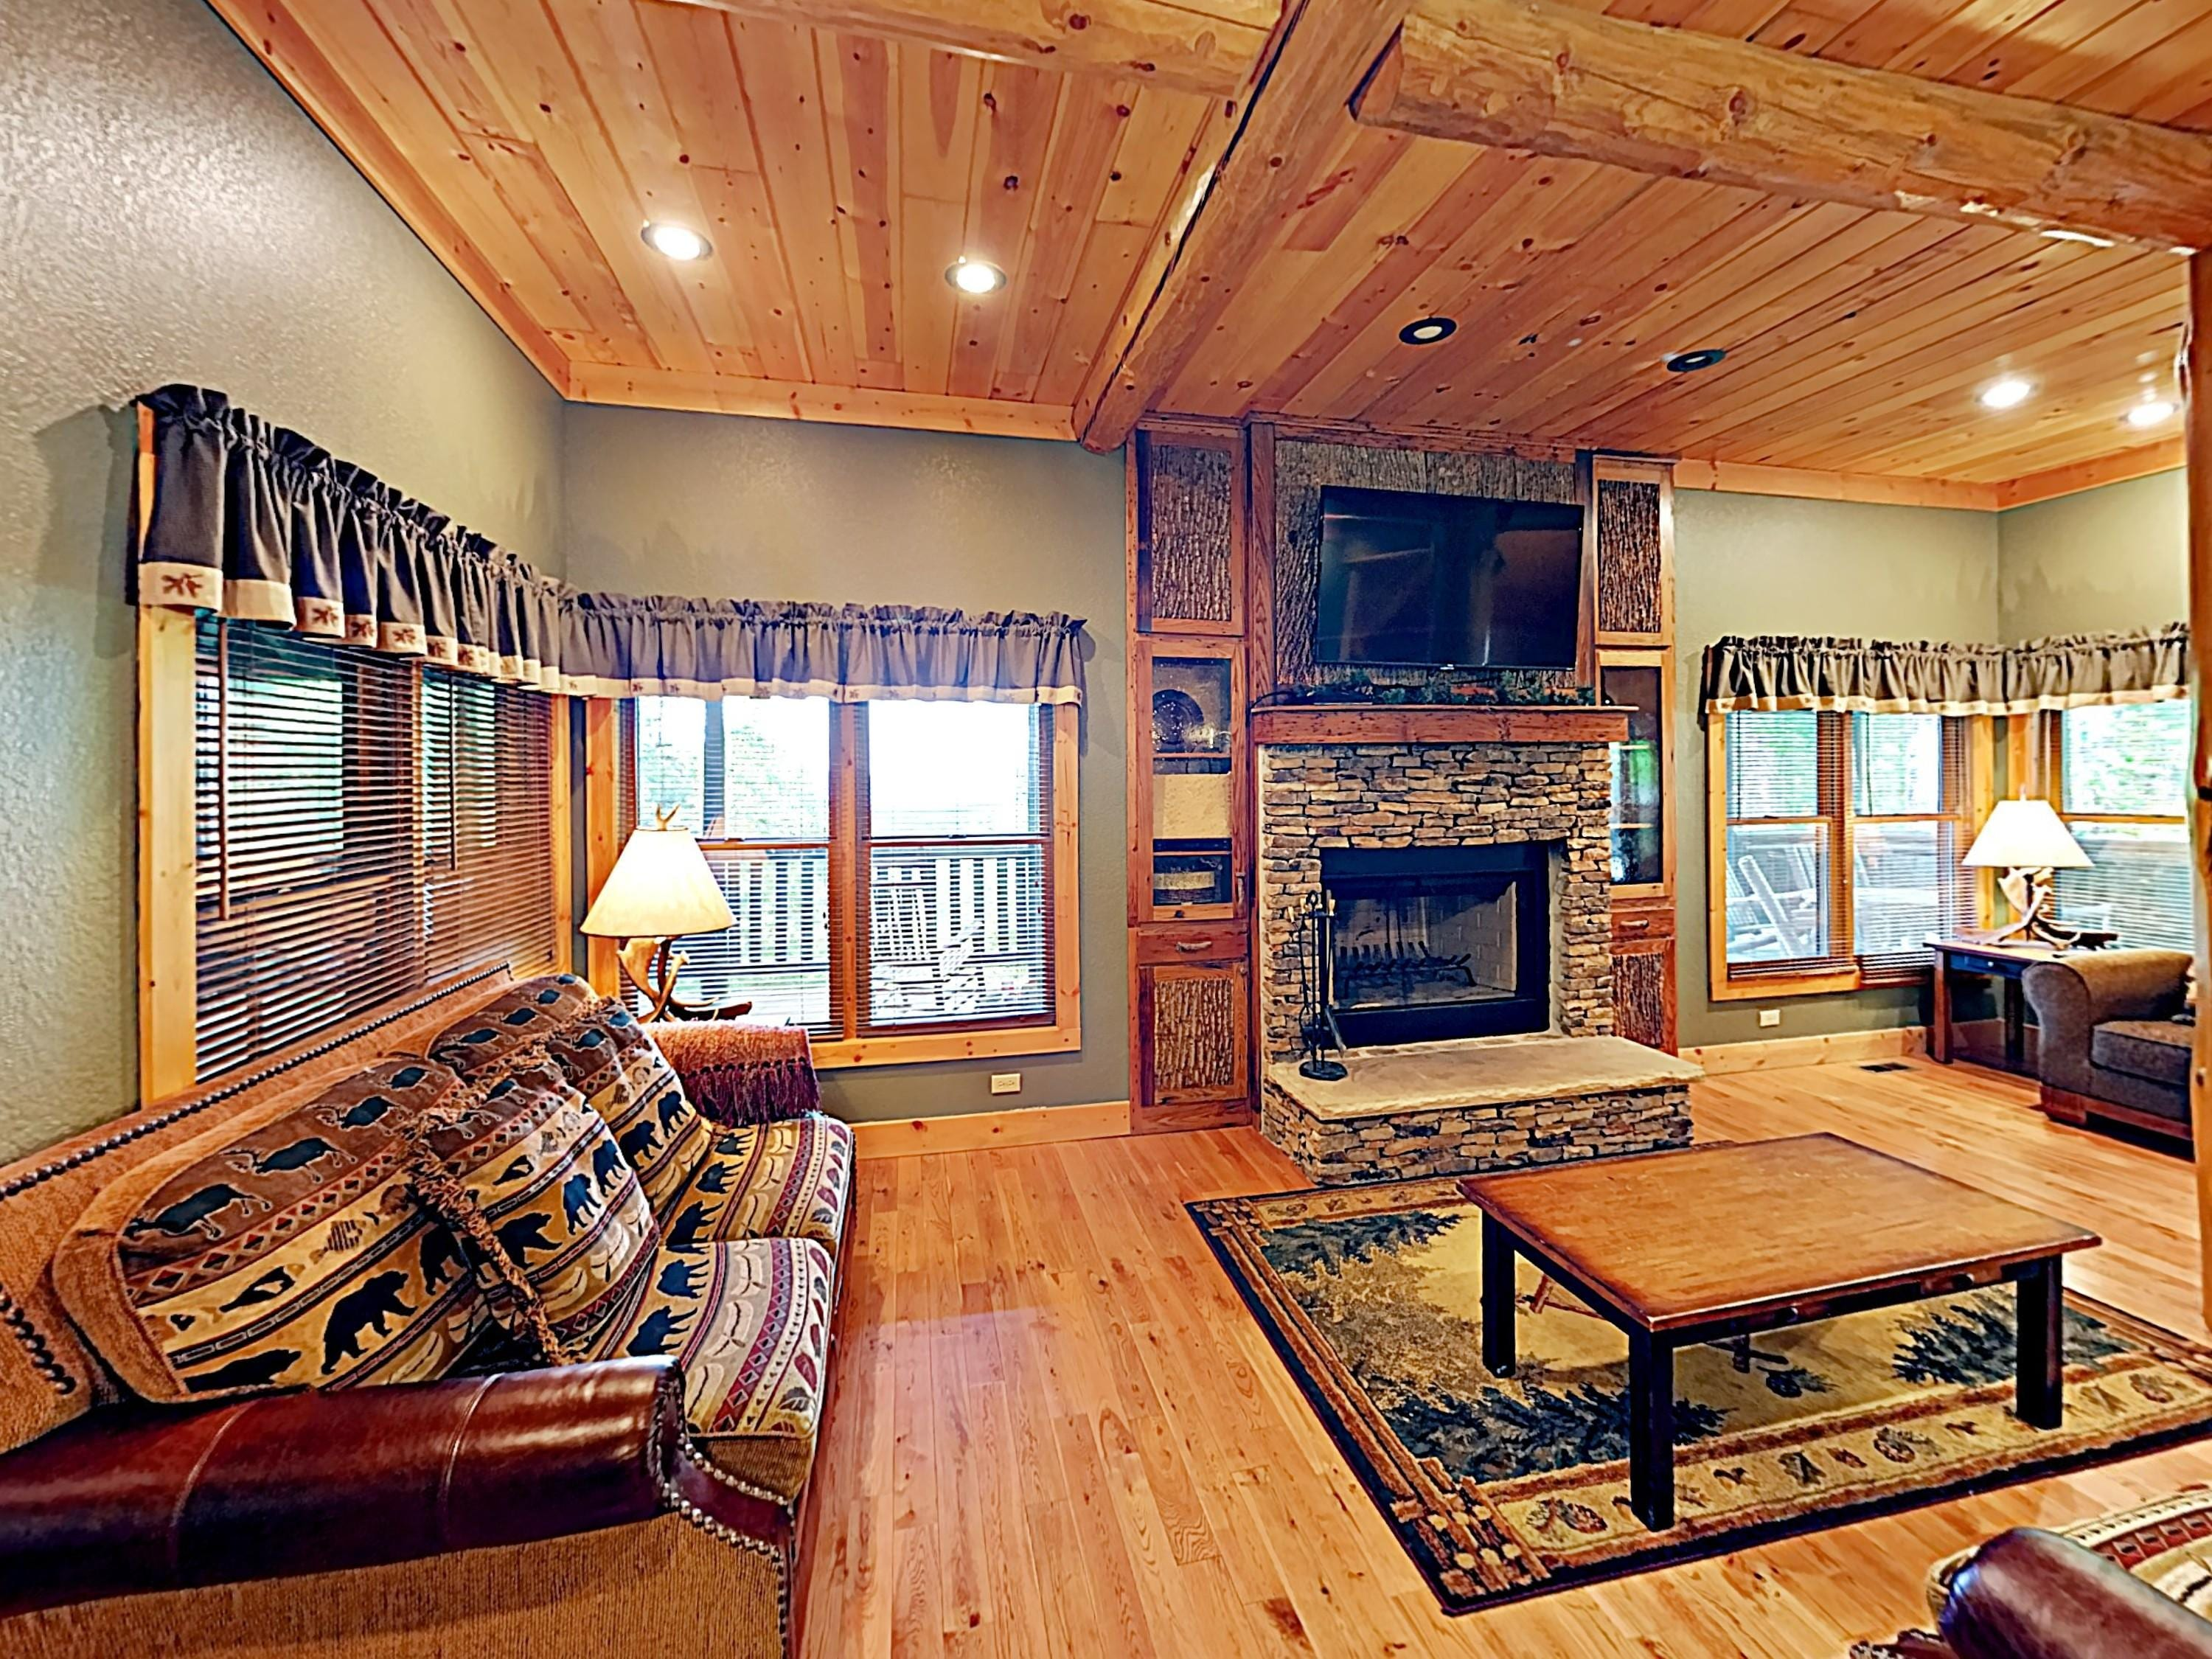 Property Image 2 - Our Together Place: Custom Mountain Lodge with Hot Tub